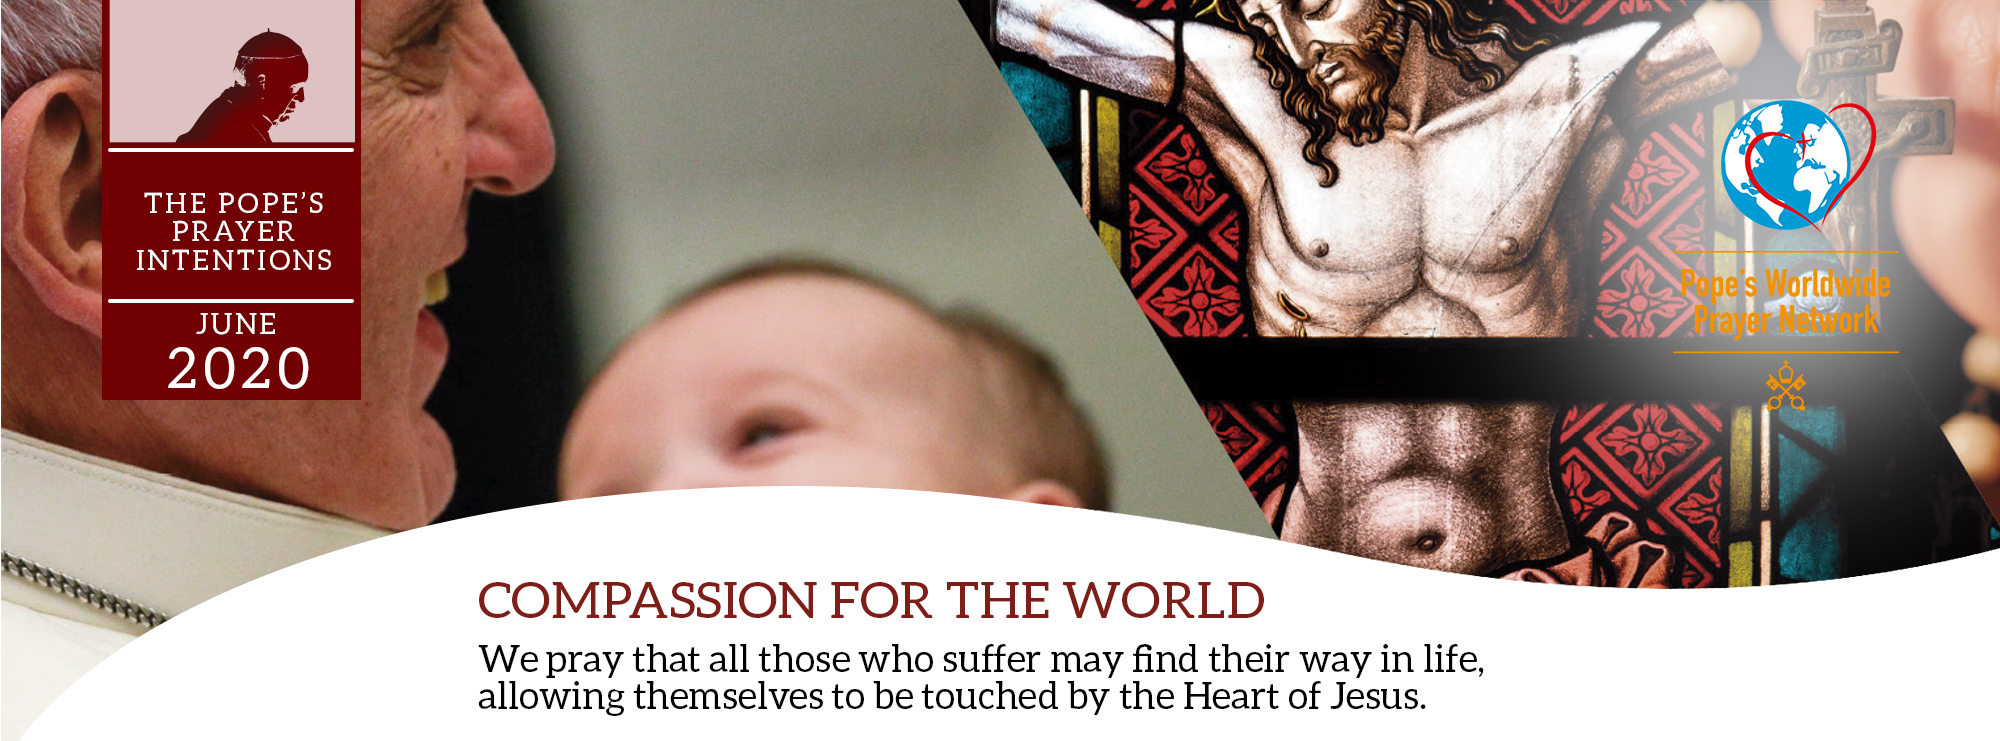 compassion for the world the pope's prayer intentions june